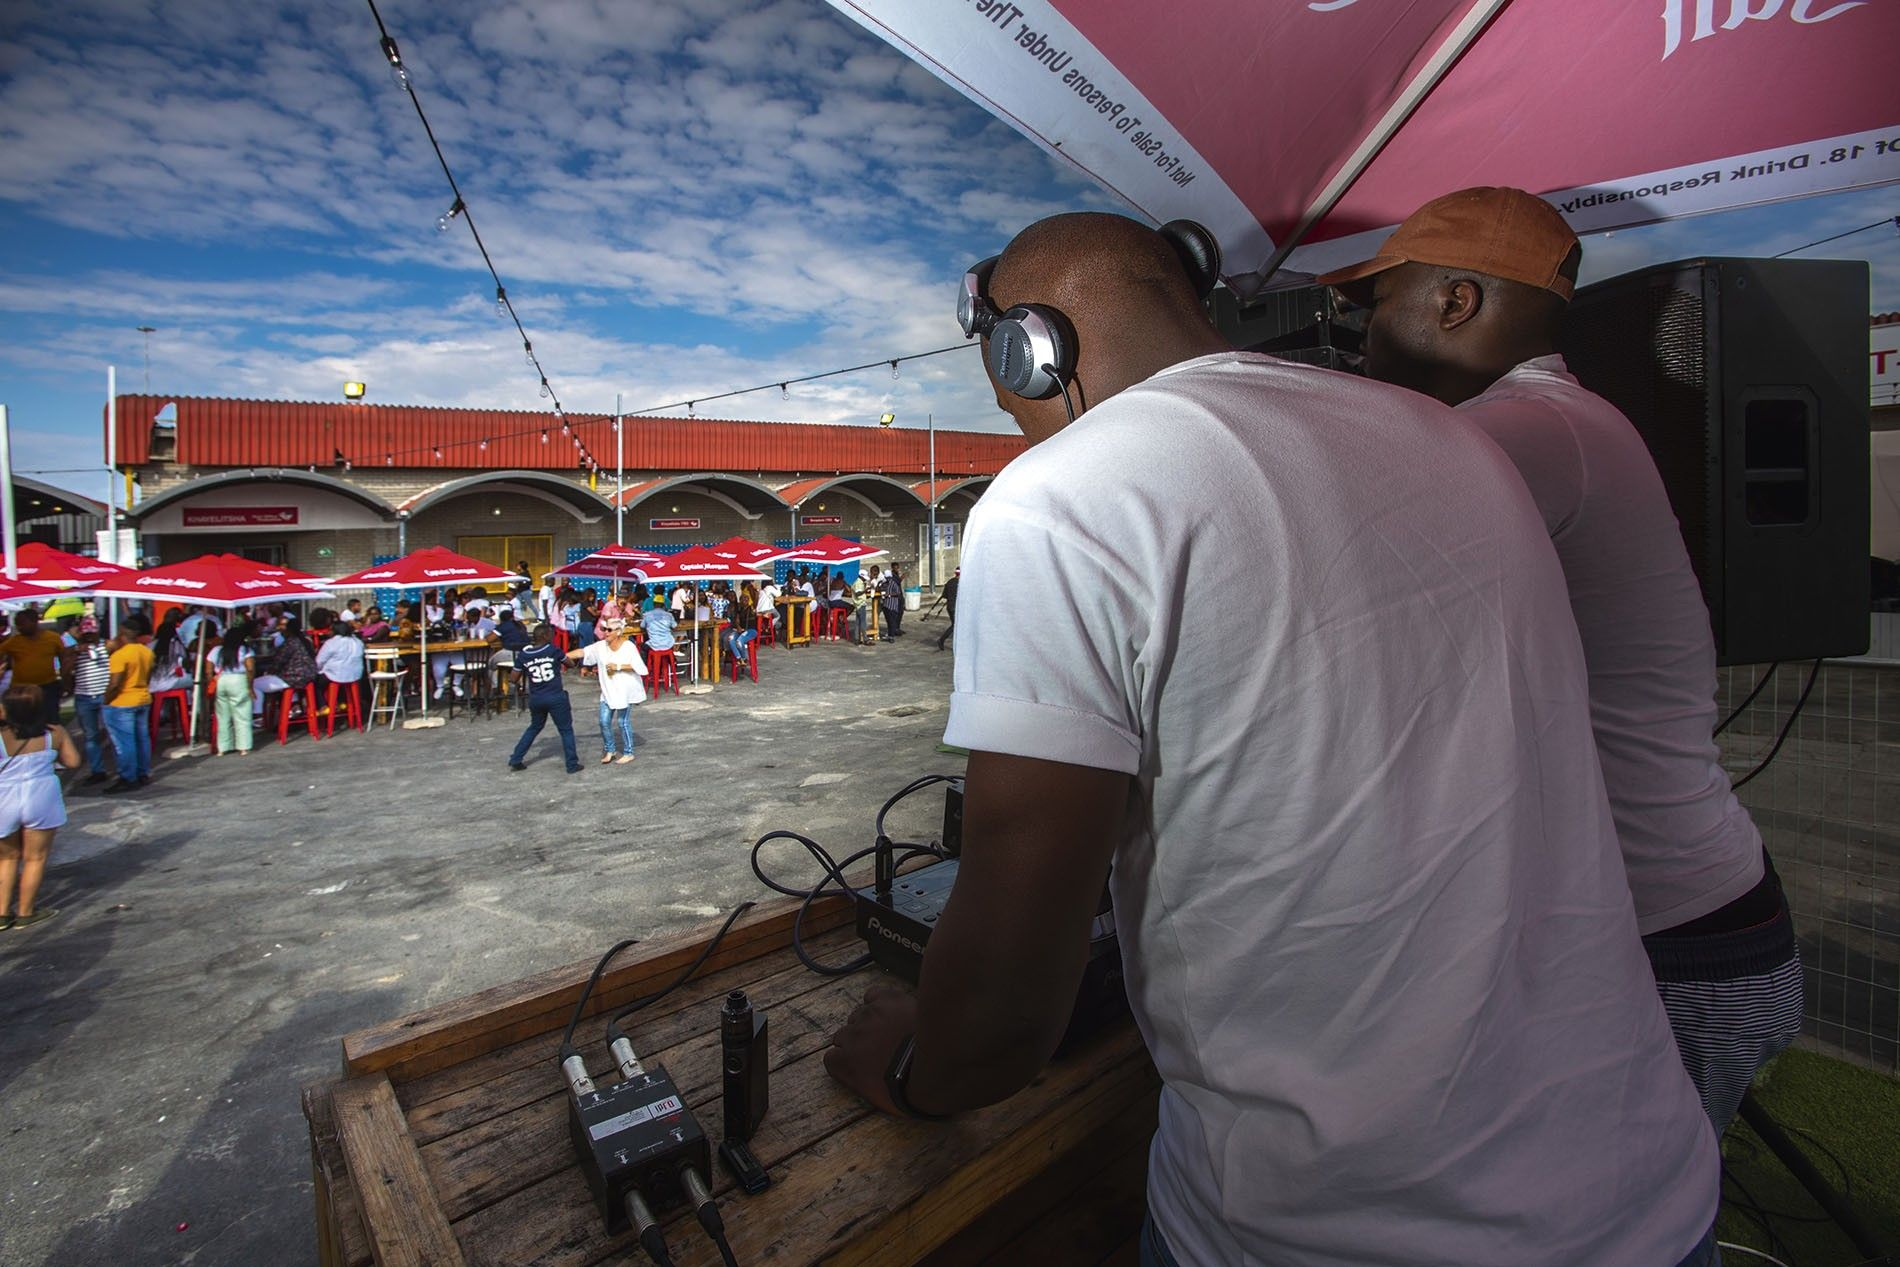 Rands, an outdoor nightclub in Khayelitsha, Cape Town's largest township. Khayelitsha's a young place, with more than 40% of inhabitants under 19.